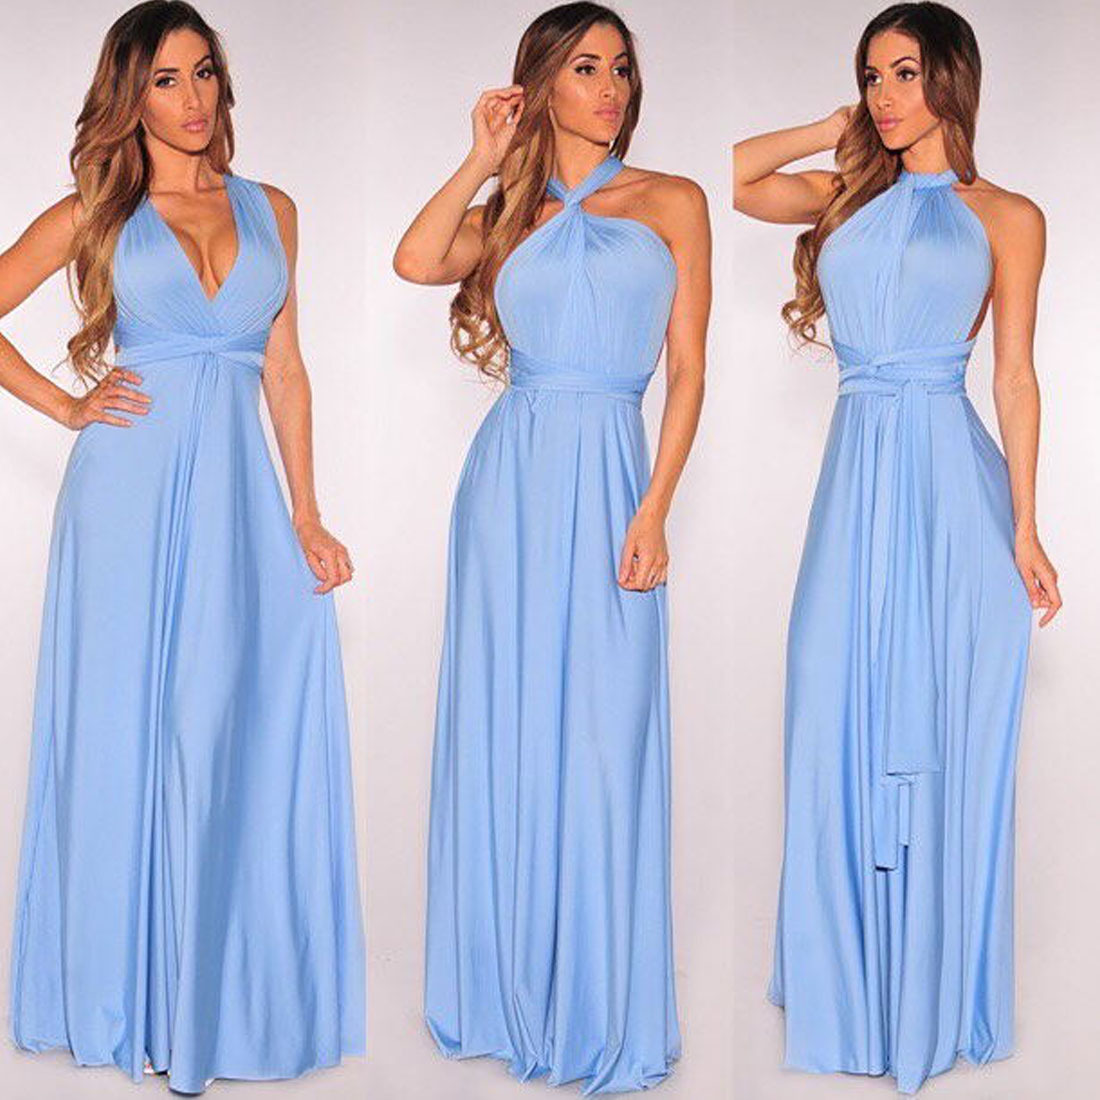 328de9f2a7 US $13.21 5% OFF|Sexy dress Multiway Wrap Convertible Boho Maxi Club Red  Dress Bandage Long Dress Party Bridesmaids Infinity Robe Longue Femme-in ...